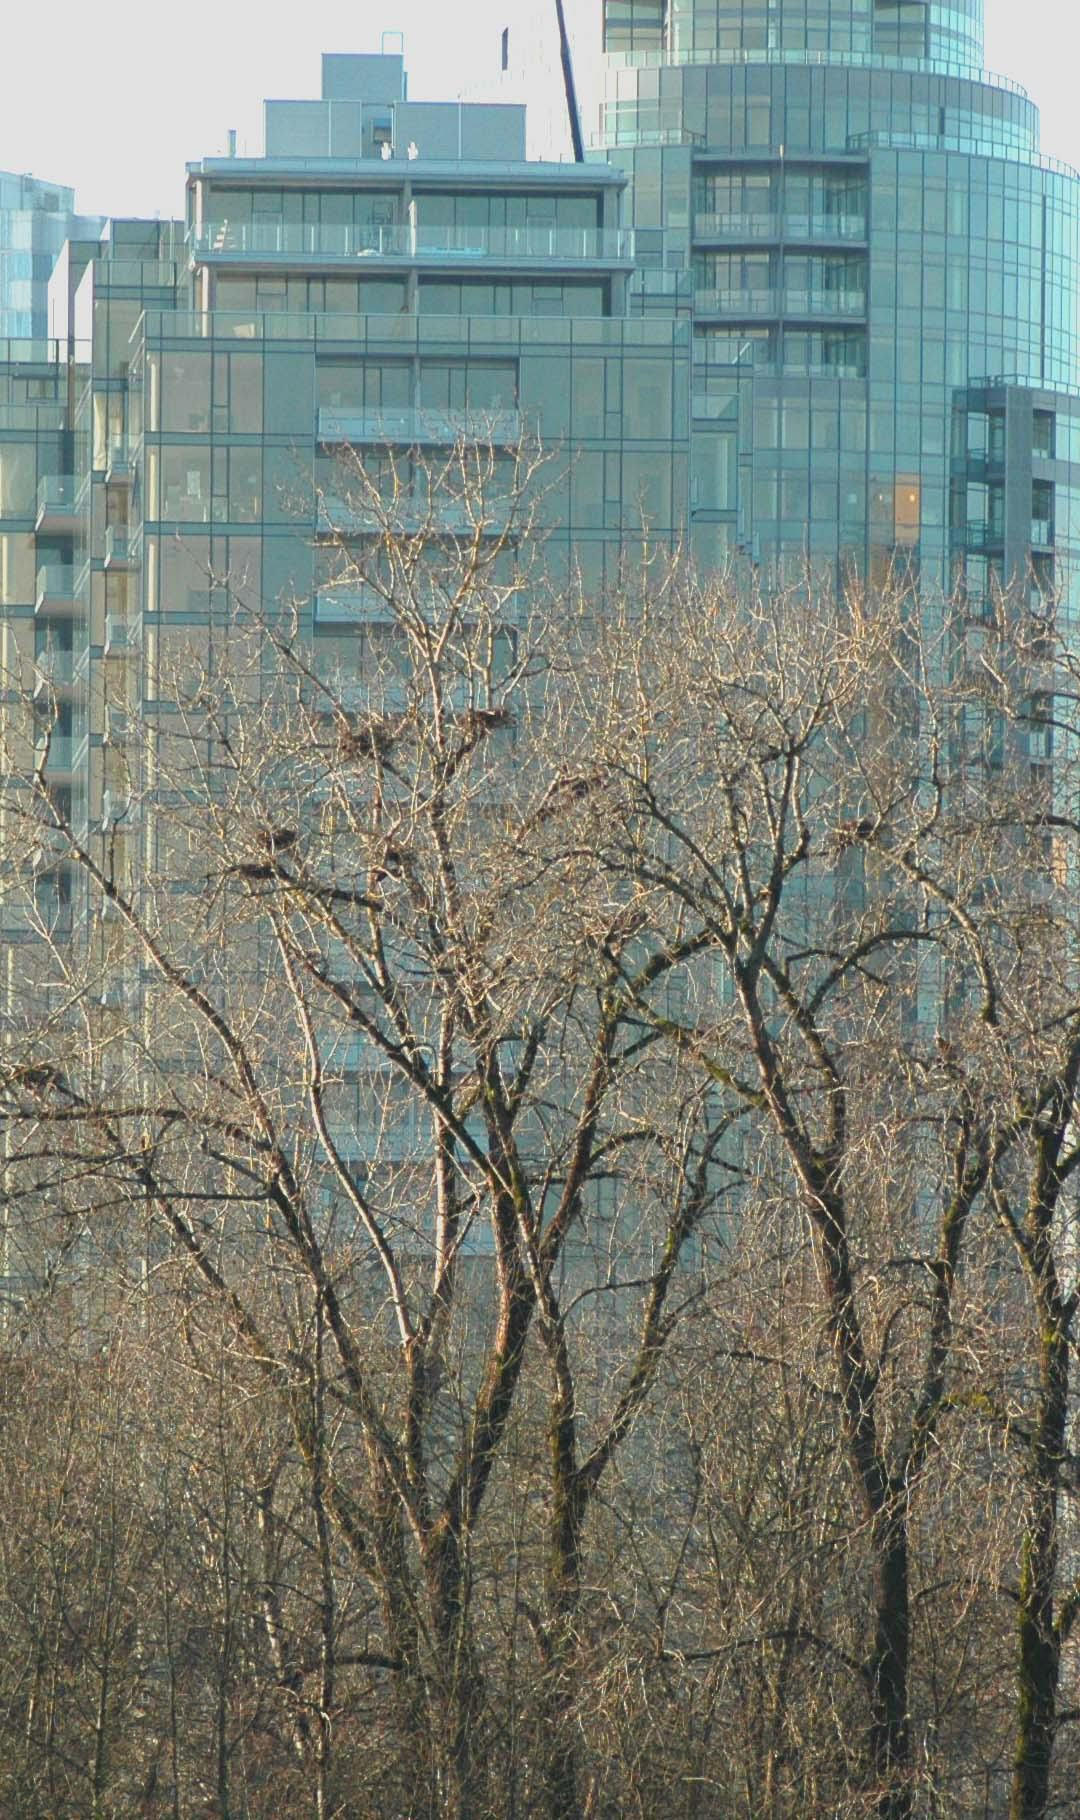 Condos,  Great Blue Heron Nests, Ross Island and South Waterfront Condominiums. Photo (copyright) Mike Houck